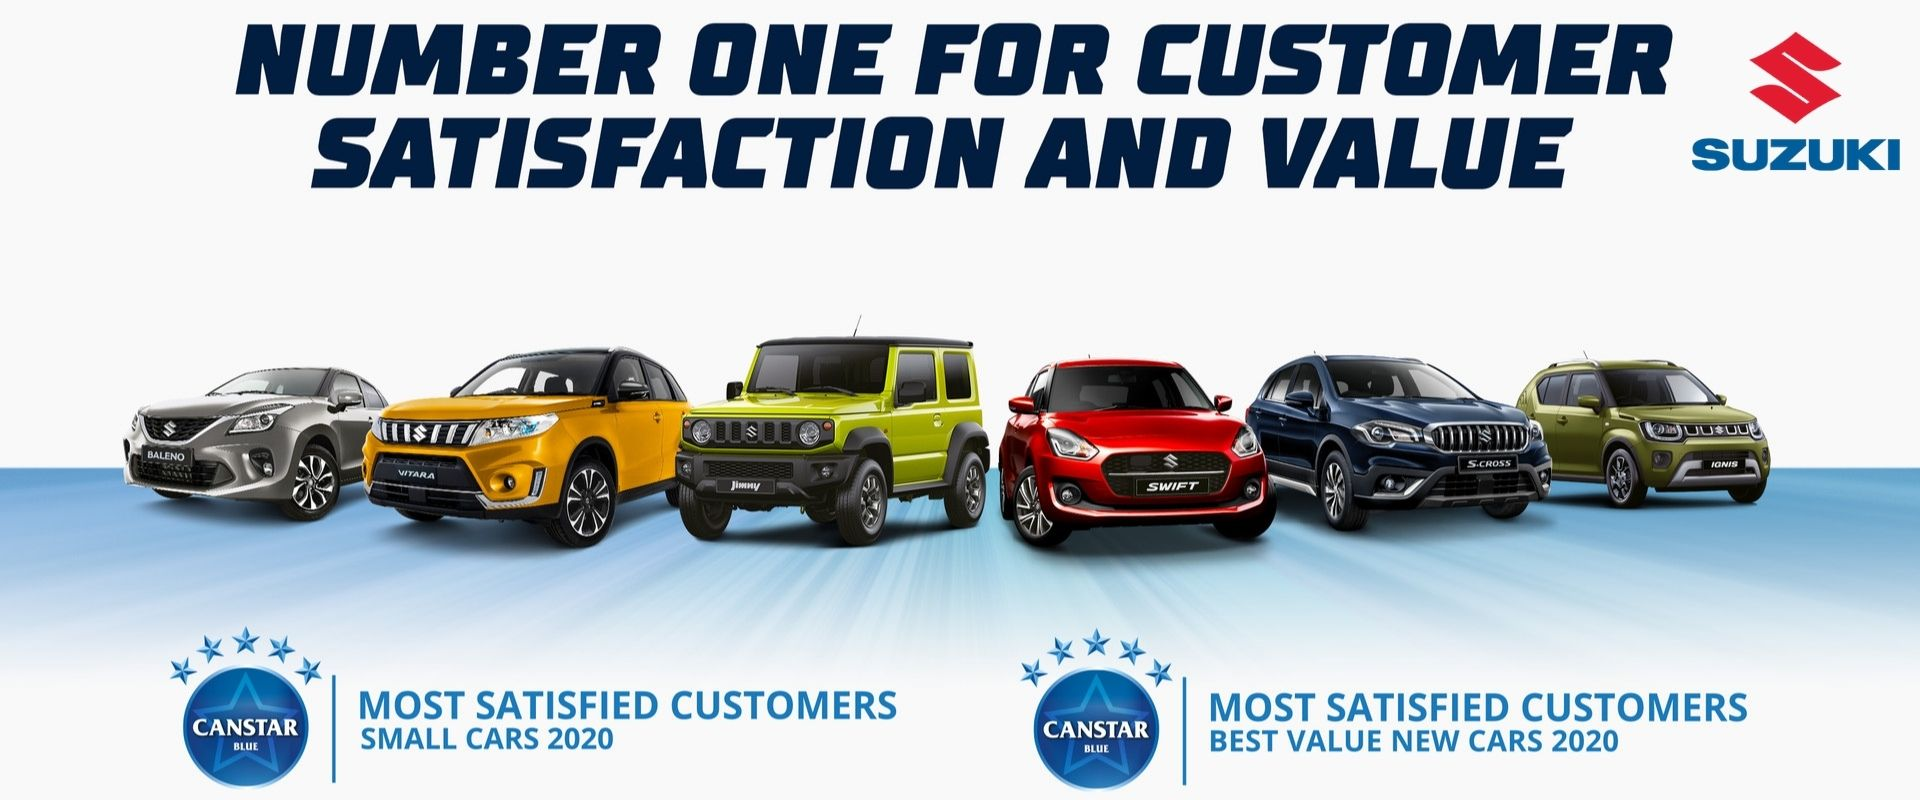 Suzuki. Number for Customer Satisfaction and Value.